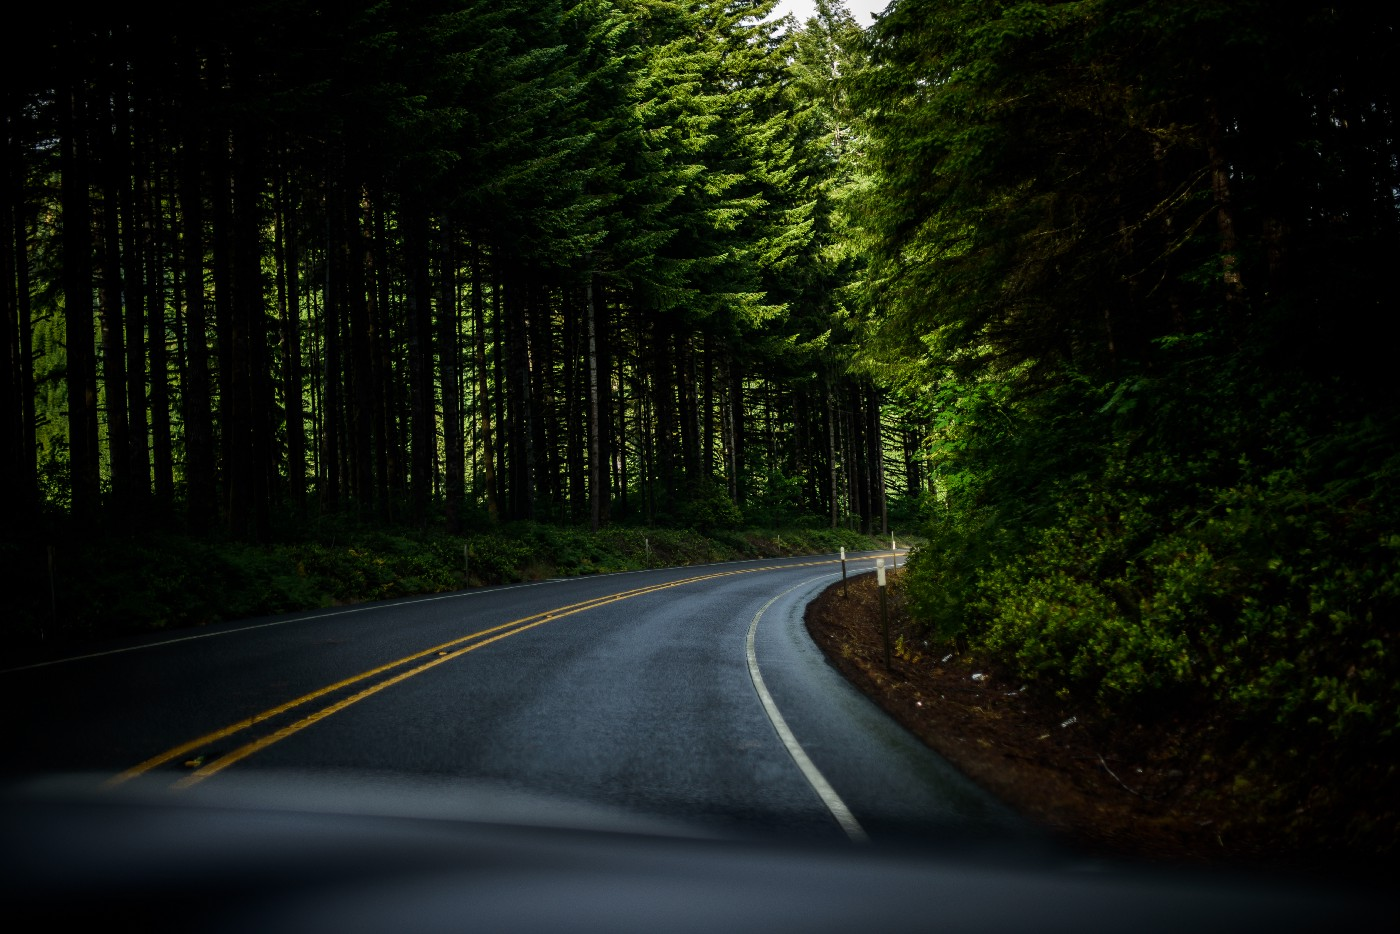 highway curving out of sight in a forest of fir trees